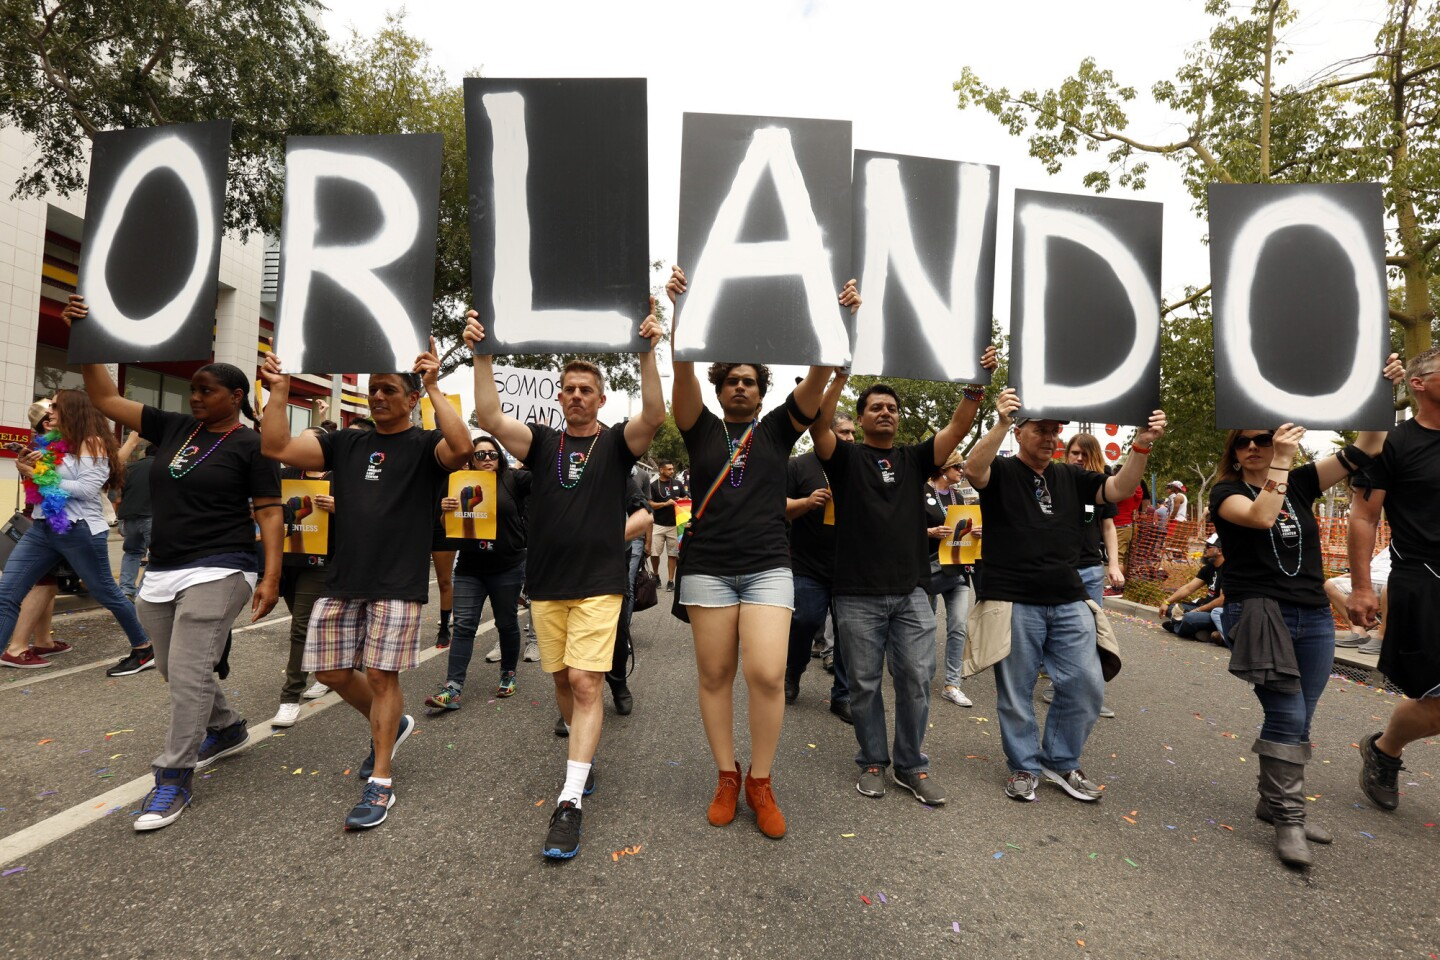 Marchers hold letters that spell out Orlando in support of the victims in the shooting during the annual Gay Pride parade in West Hollywood.